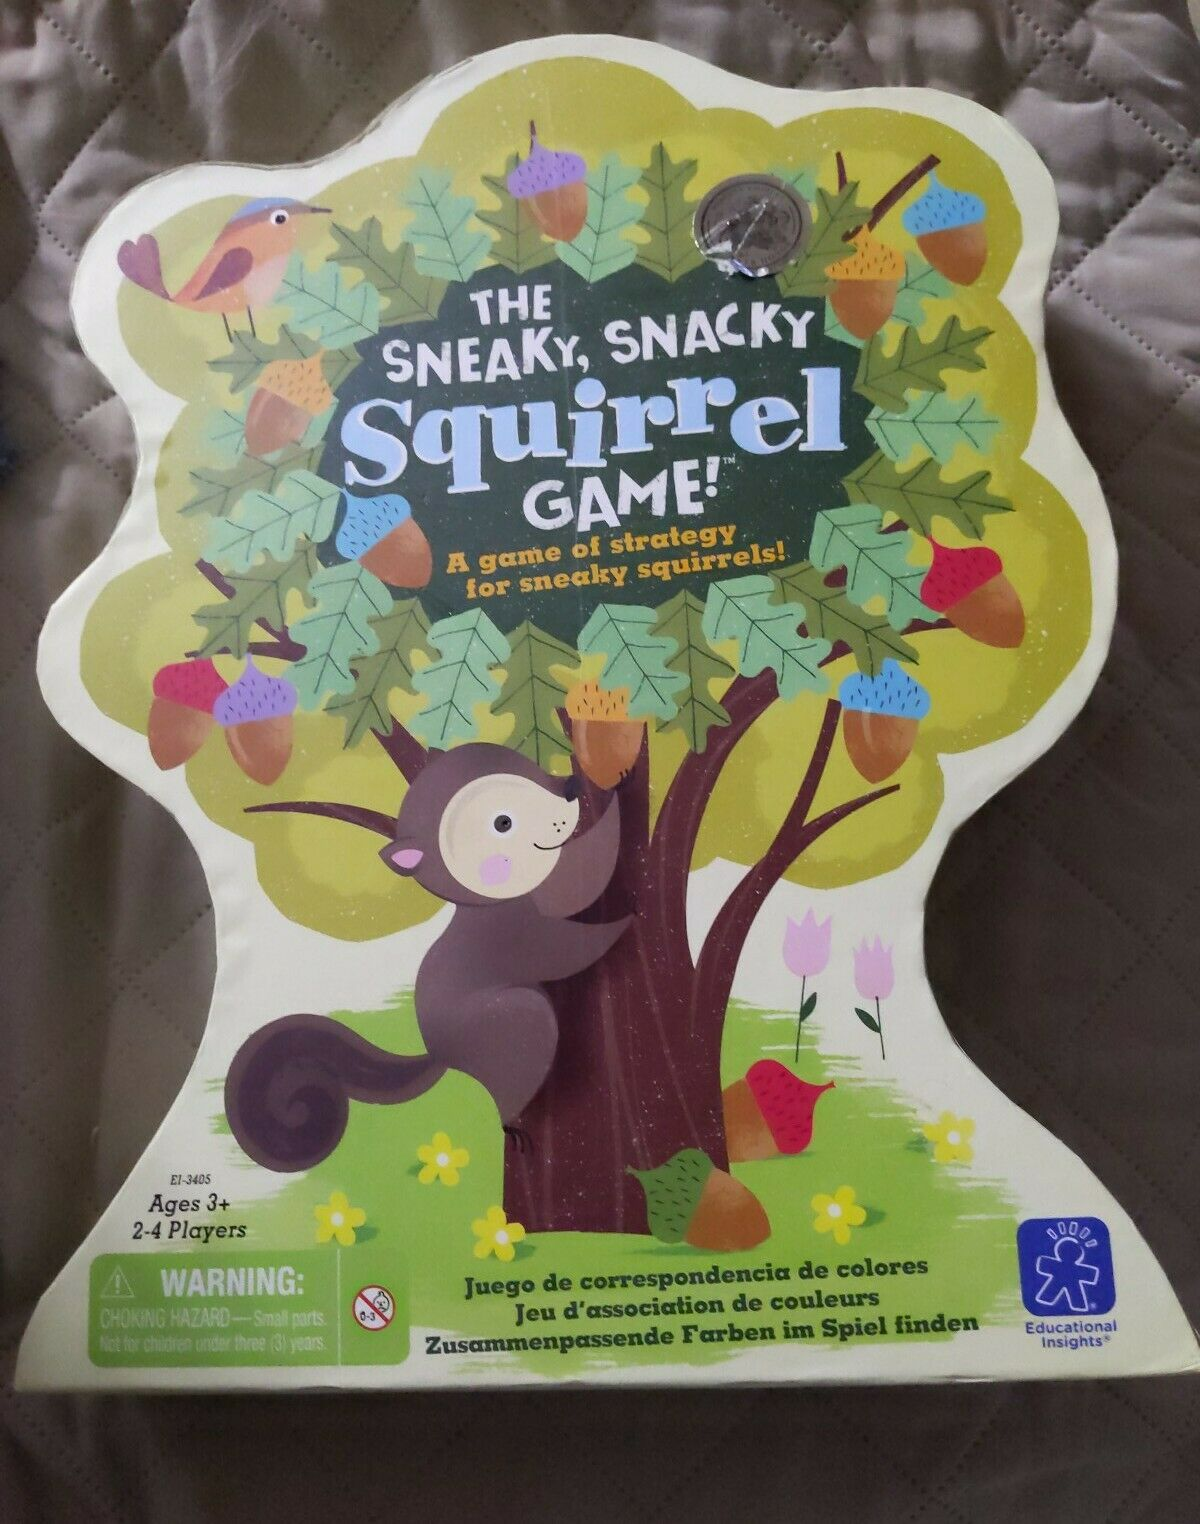 Educational Insights The Sneaky, Snacky Squirrel Game 100% complete